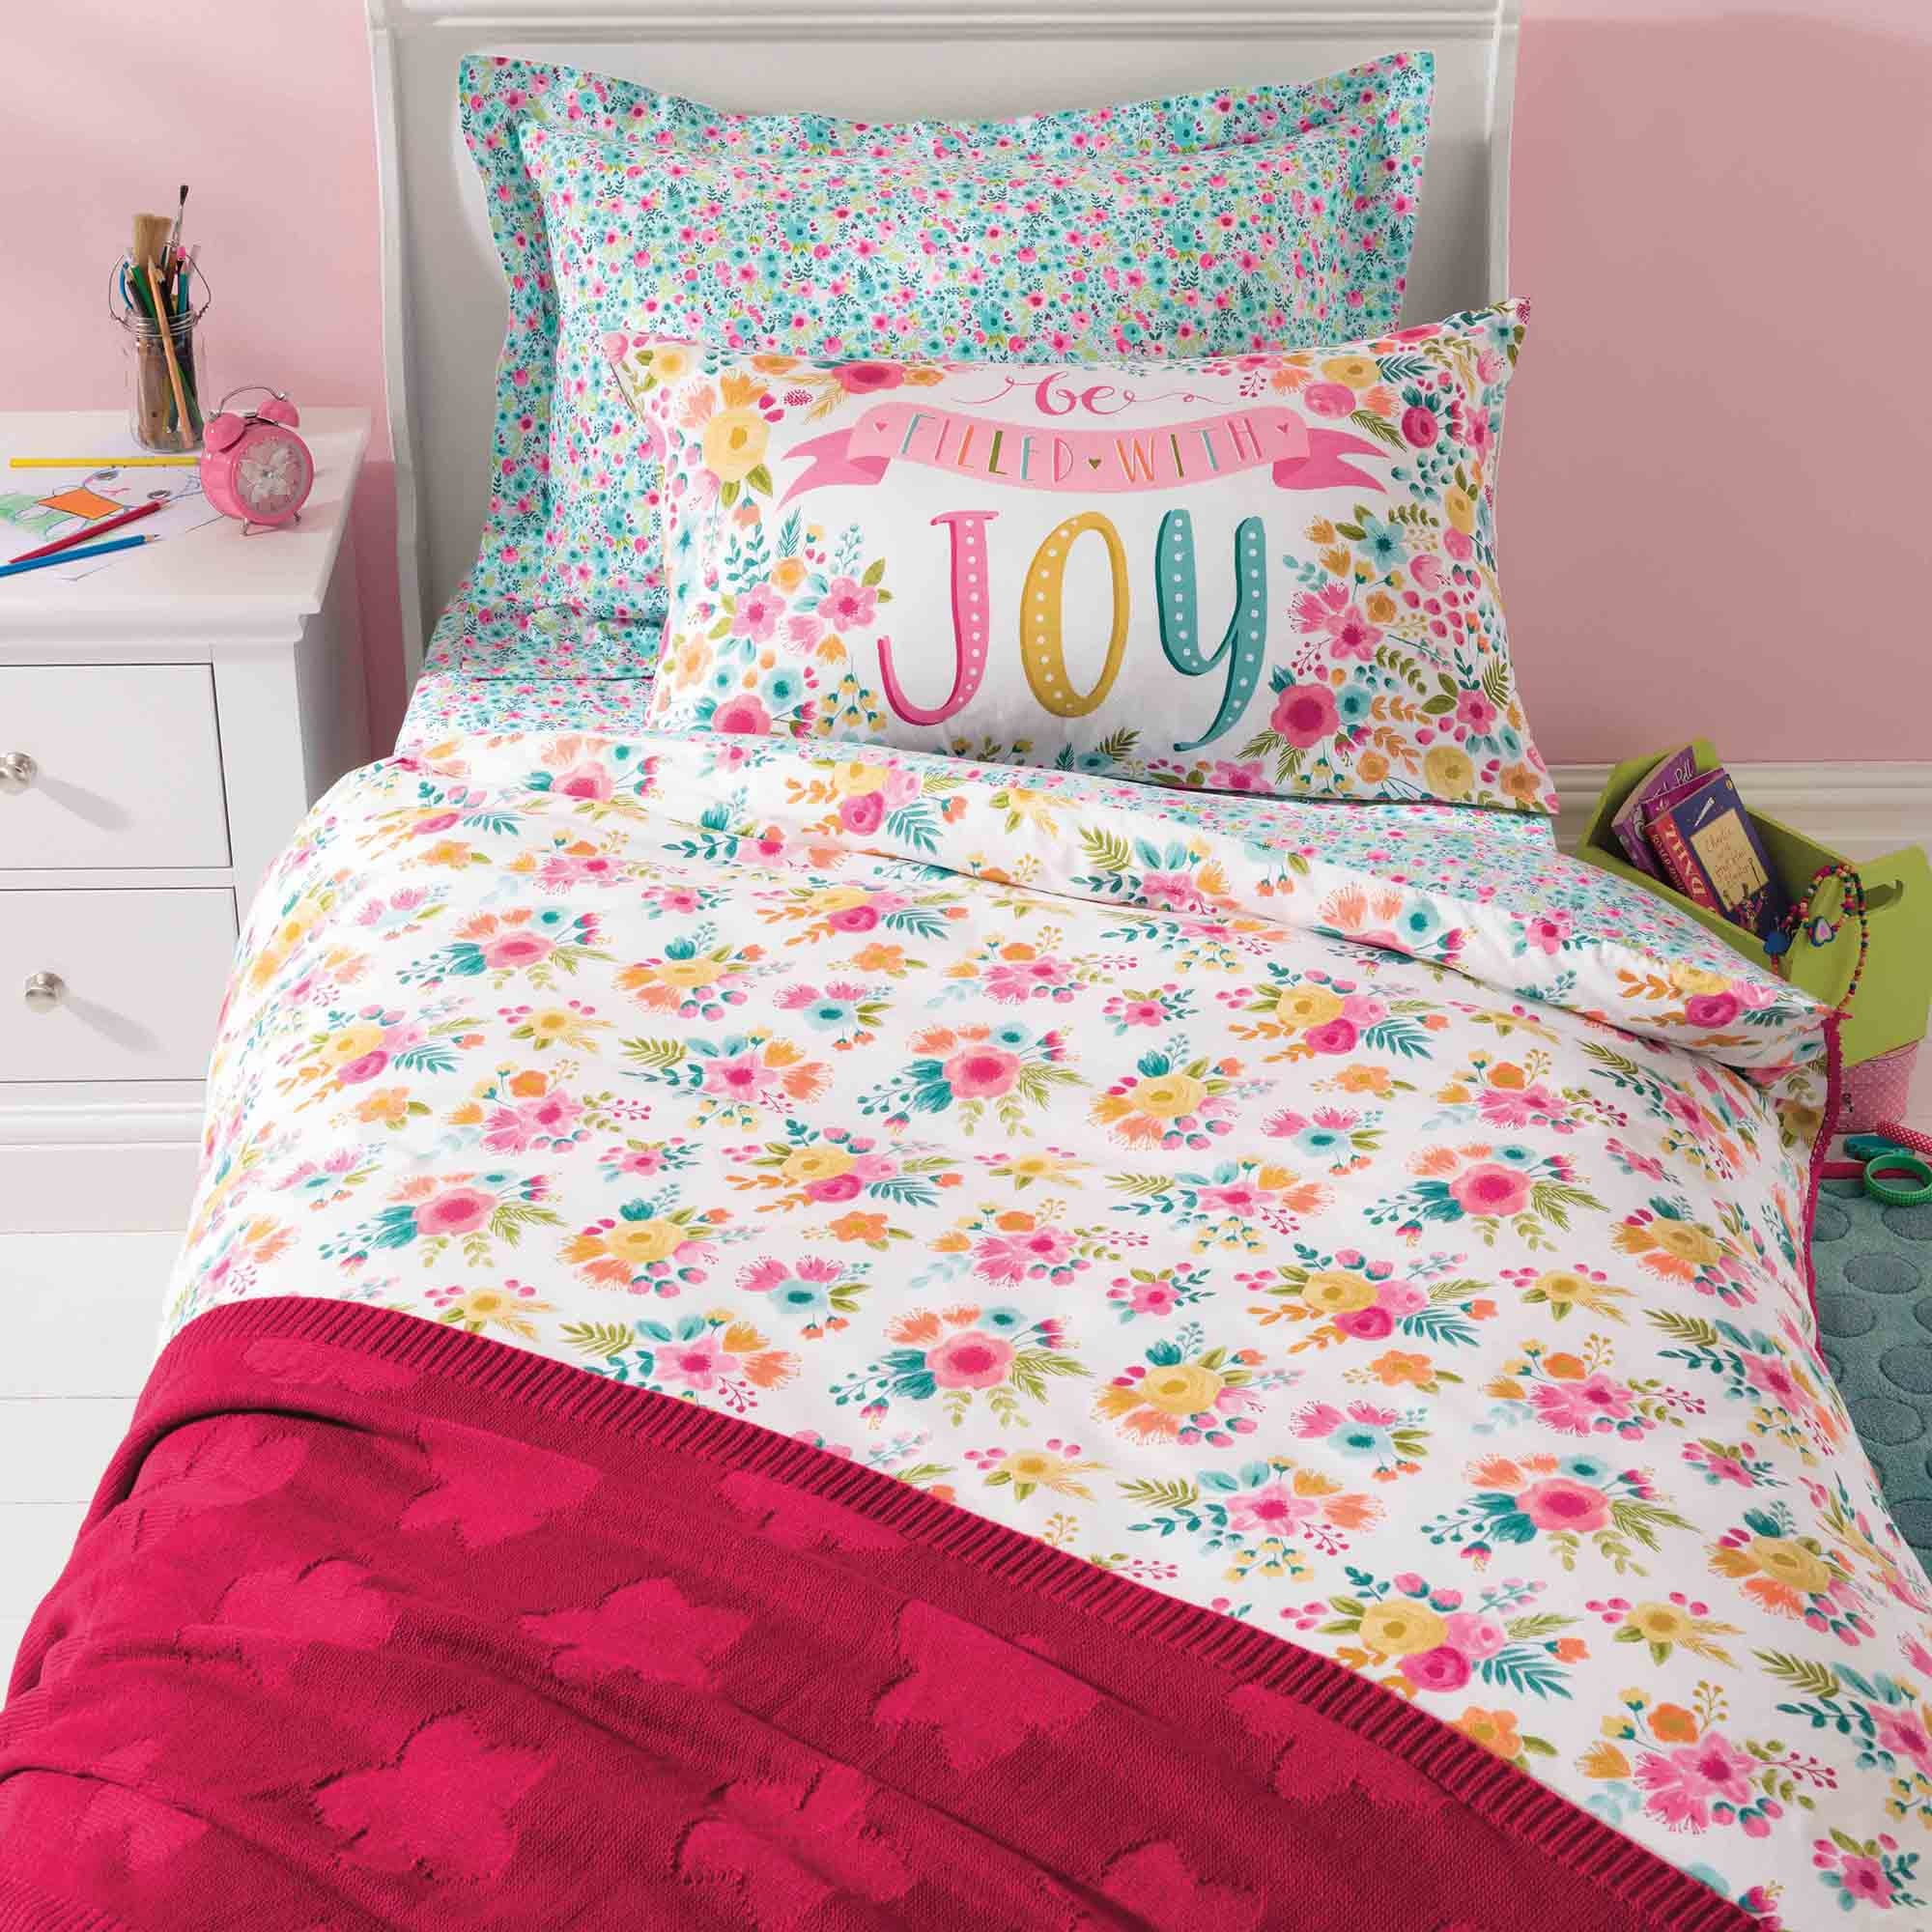 Photo of Friends and flowers duvet cover and pillowcase set pink / blue / yellow